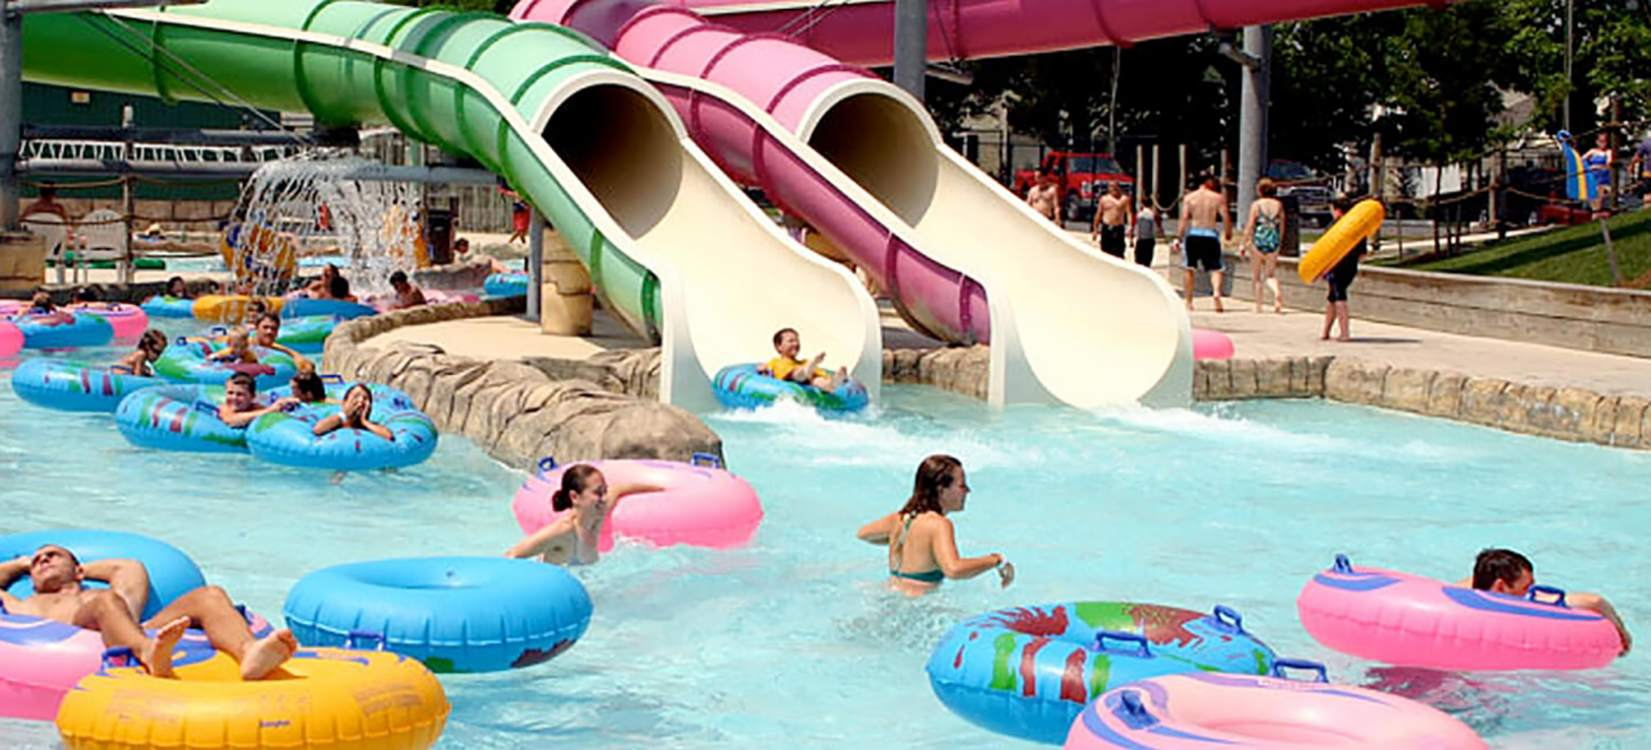 5 Great Amusement and Water Parks in Delaware